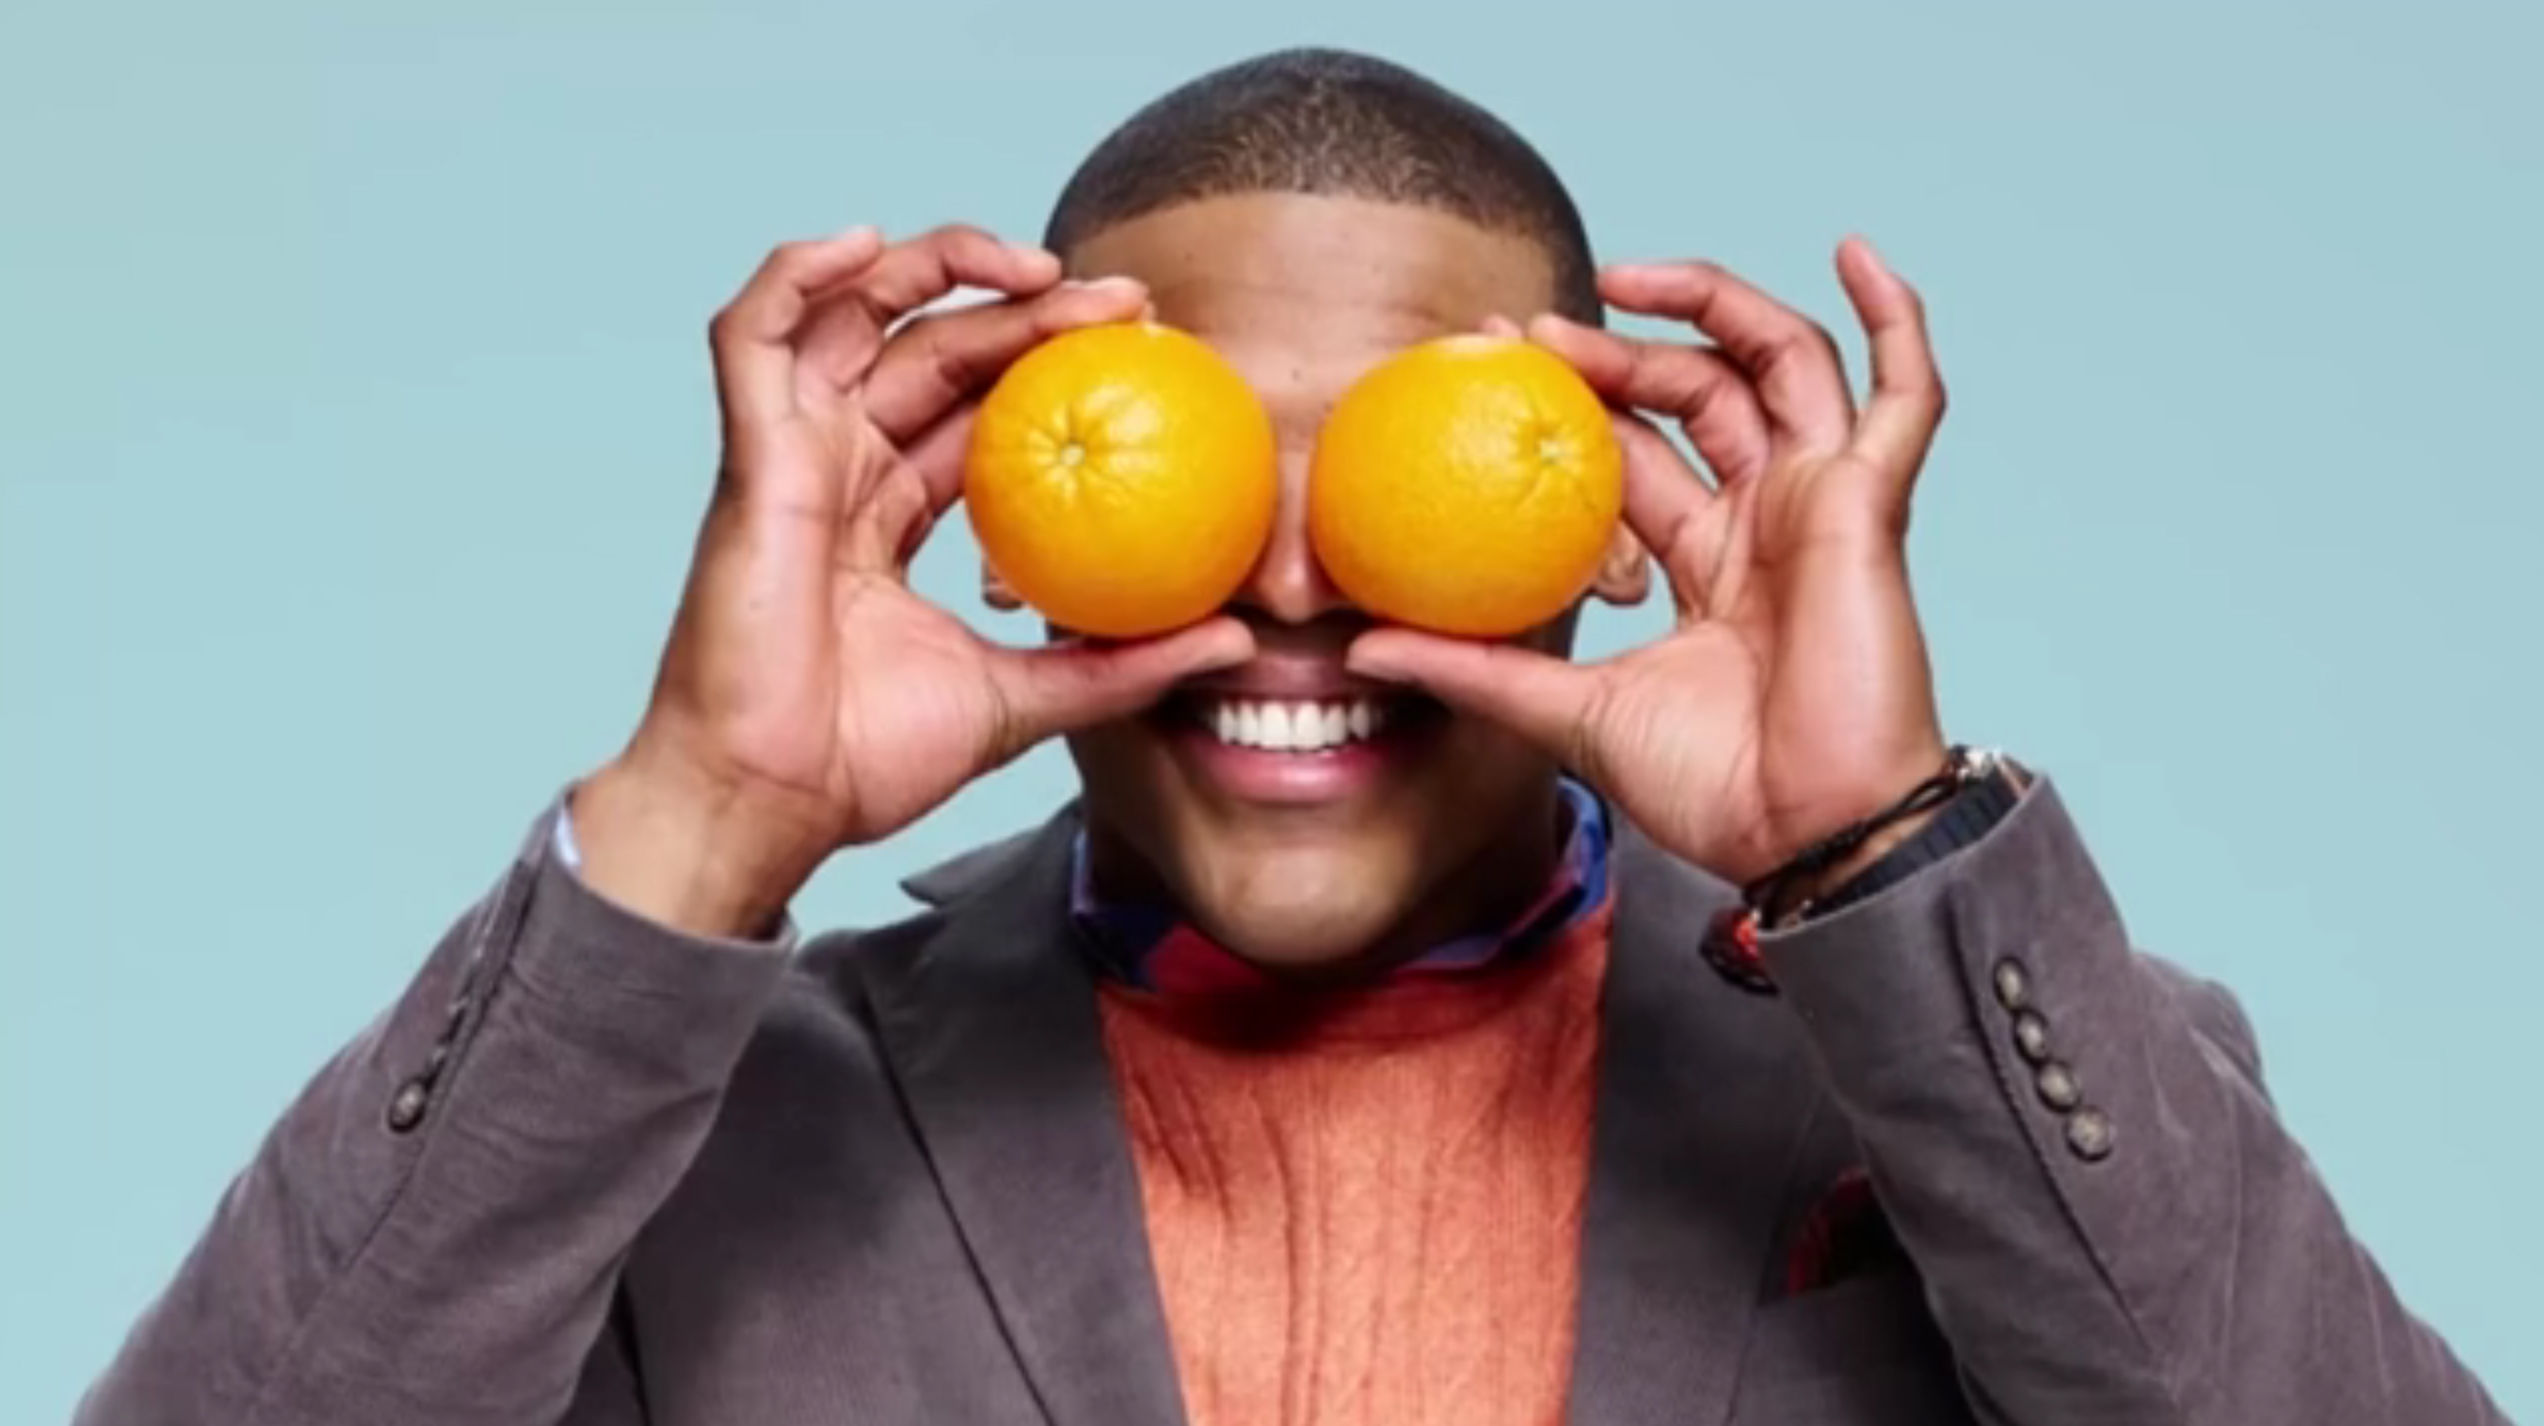 fruits and vegetables marketing plan The focus on eating more fruits and vegetables makes it easier than ever to get people into your store ablestockcom/ablestockcom/getty images.